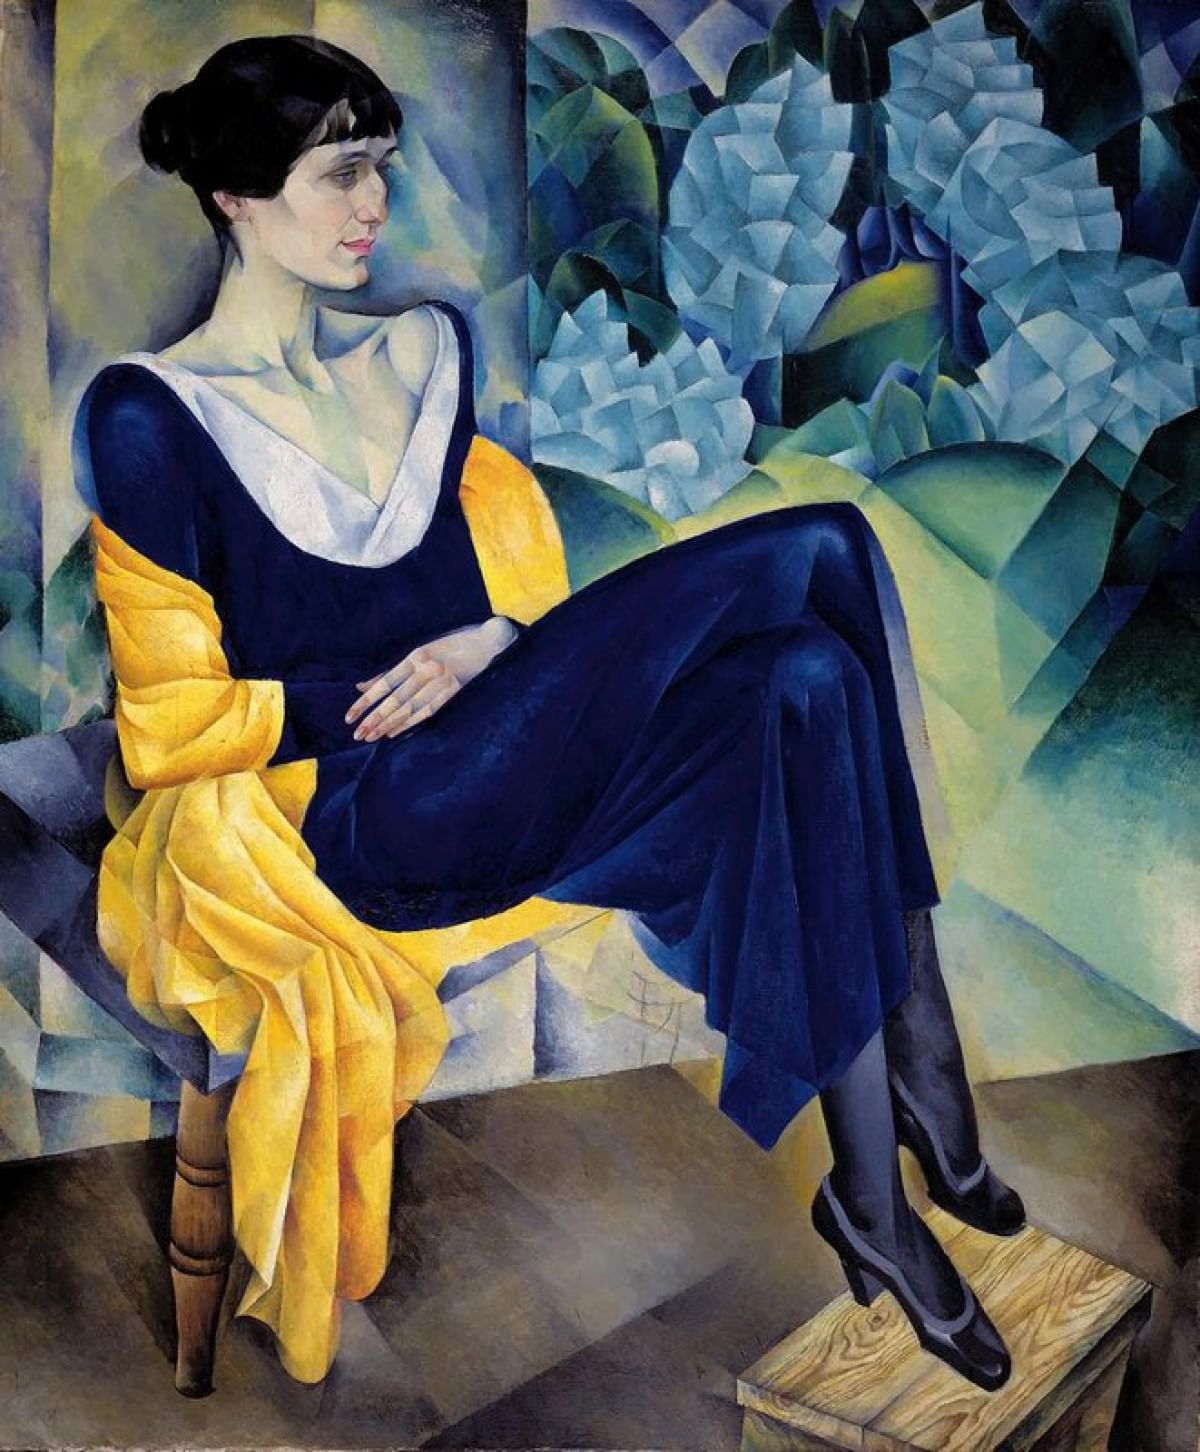 Anna Akhmatova: Life and works